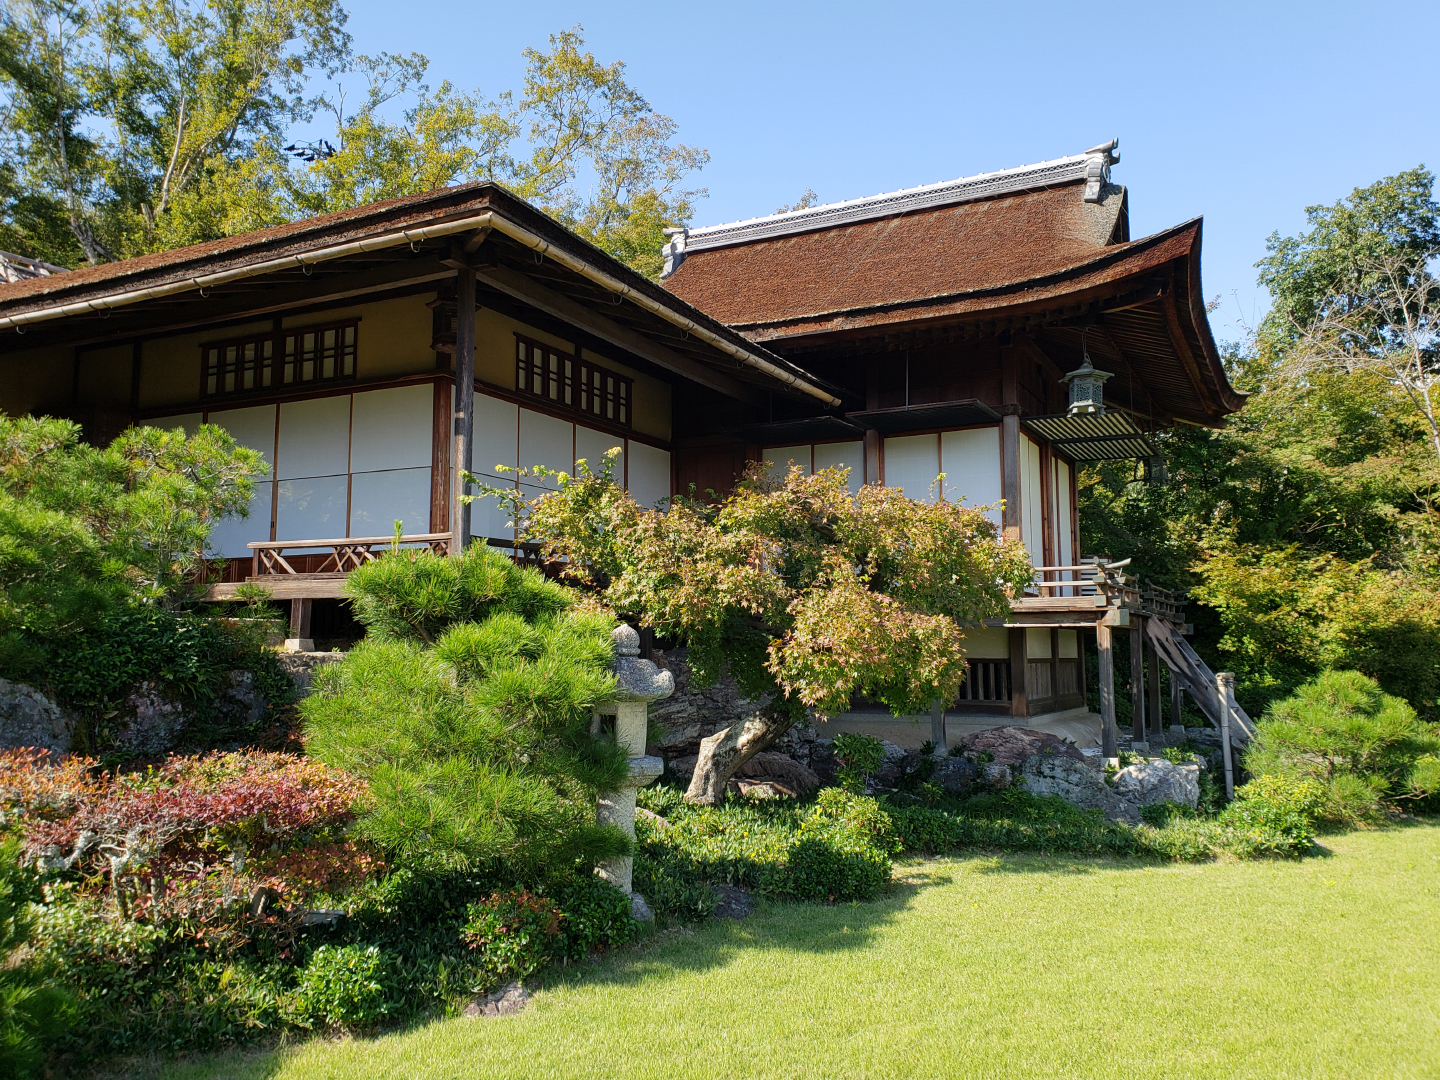 Ōkōchi spent 30 years building this villa and the surrounding gardens.